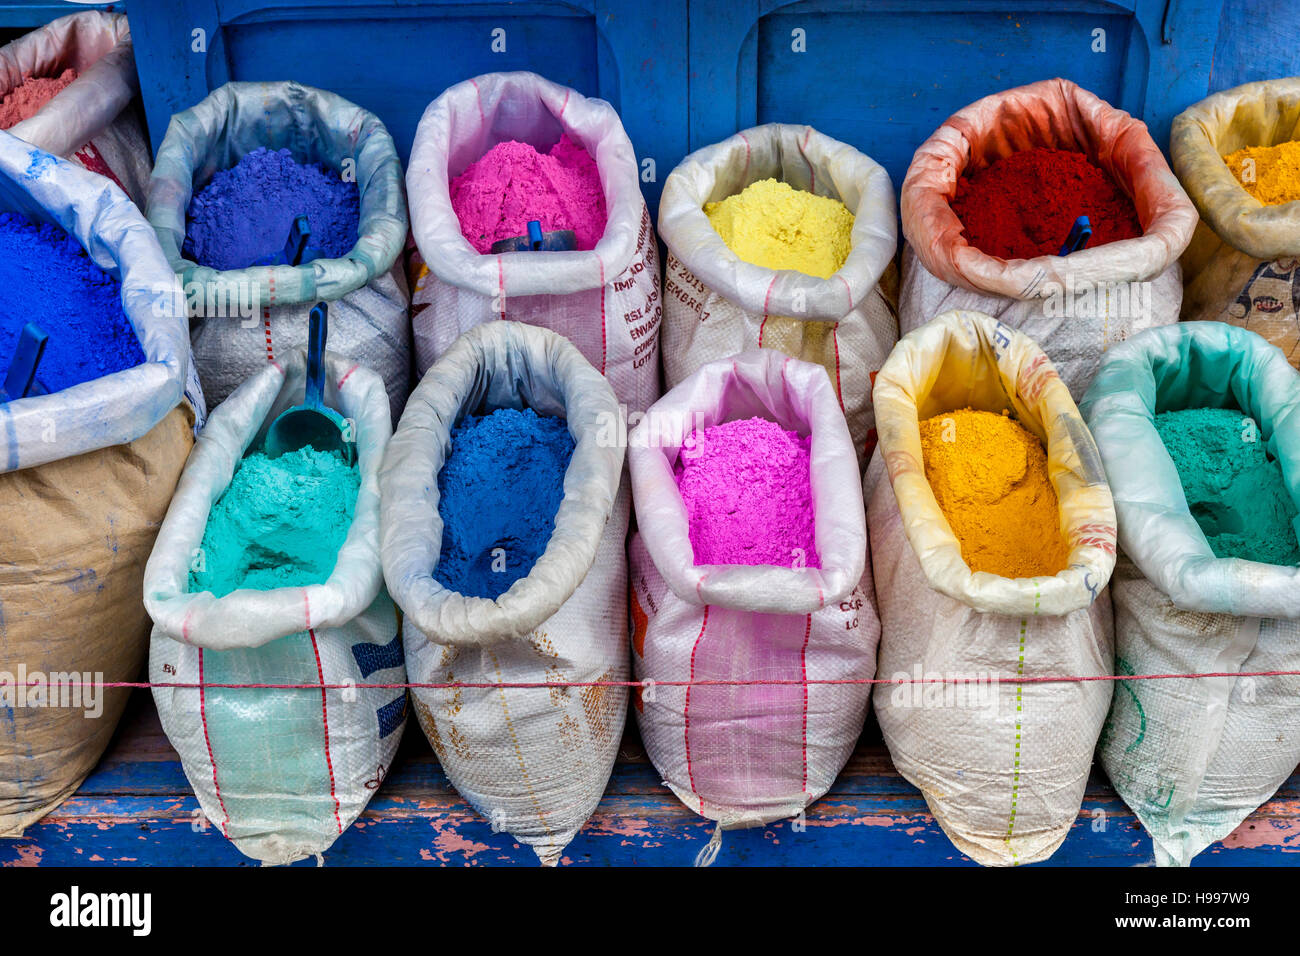 Sacks Of Colourful Clothes Dye, Chefchaouen, Morocco - Stock Image